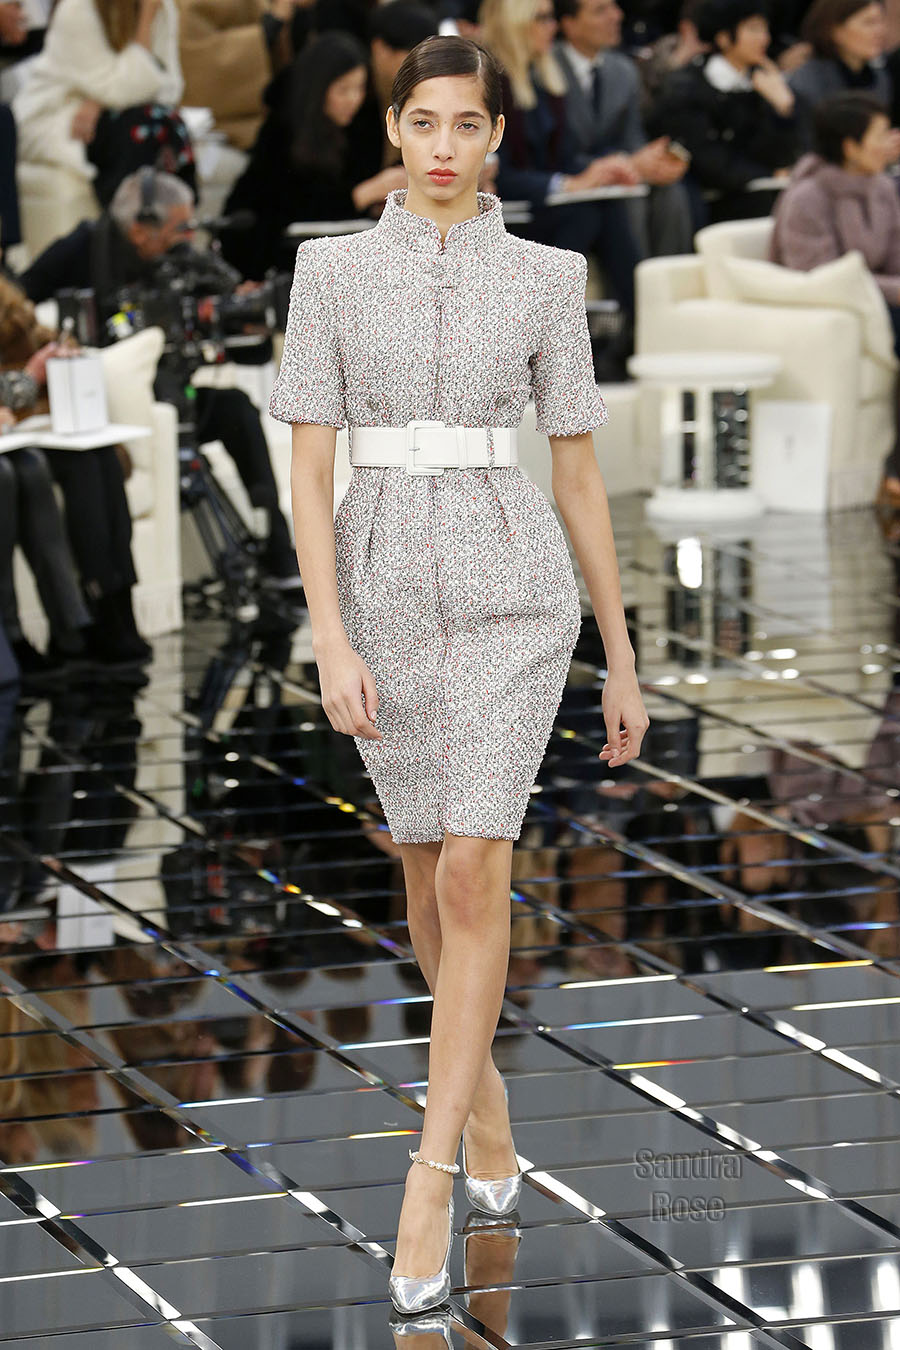 2017 fashion runway - Chanel Haute Couture Spring Summer 2017 In Paris Sandra Rose